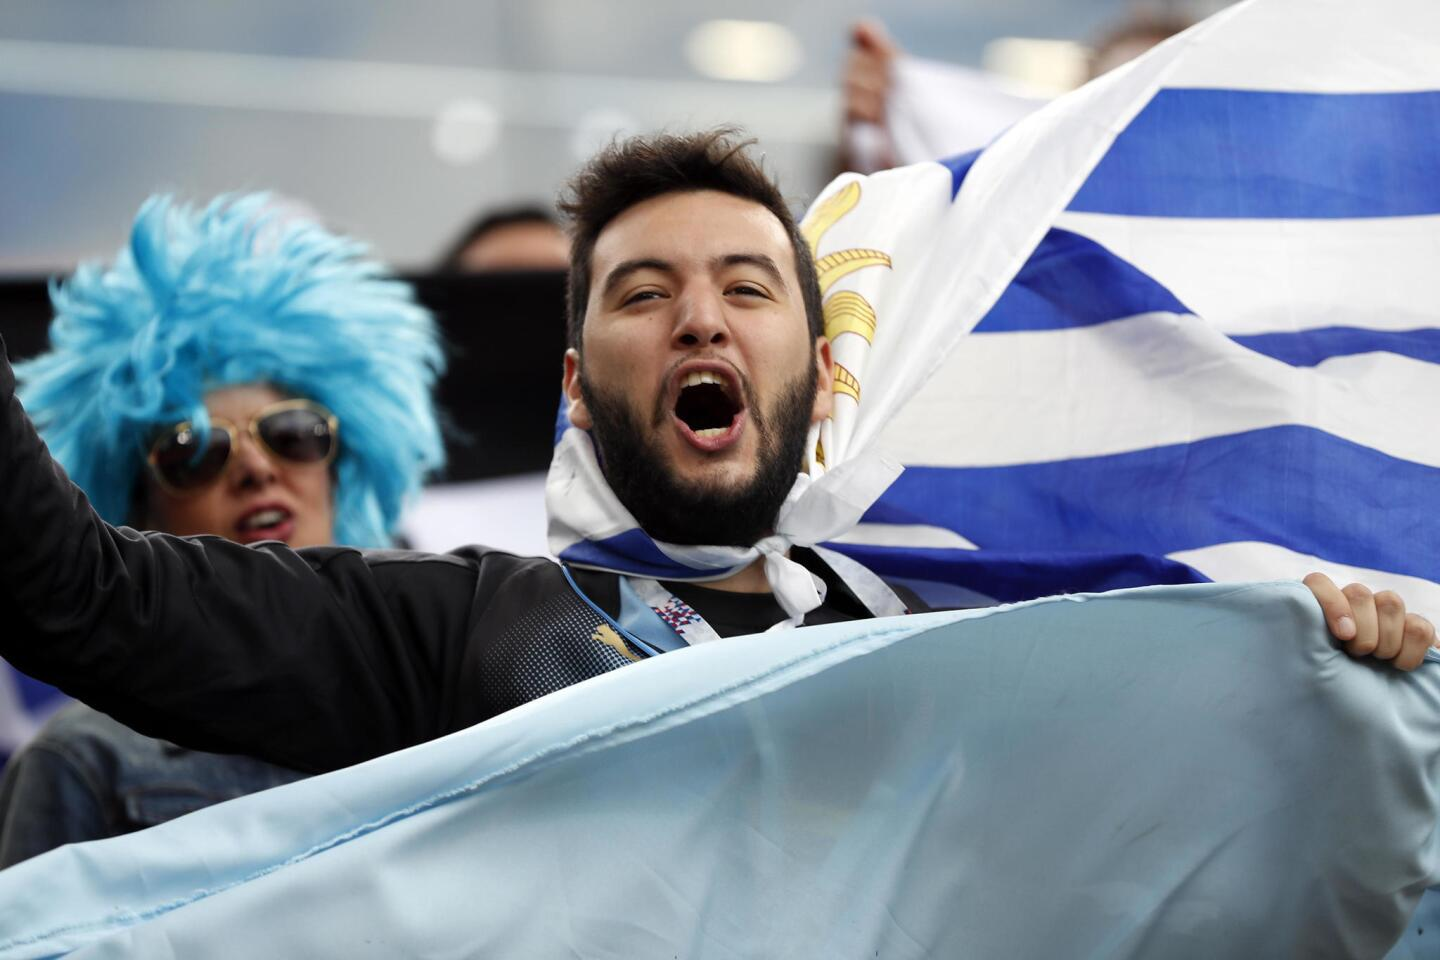 Ekaterinburg (Russian Federation), 15/06/2018.- Supporters of Uruguay prior the FIFA World Cup 2018 group A preliminary round soccer match between Egypt and Uruguay in Ekaterinburg, Russia, 15 June 2018. (RESTRICTIONS APPLY: Editorial Use Only, not used in association with any commercial entity - Images must not be used in any form of alert service or push service of any kind including via mobile alert services, downloads to mobile devices or MMS messaging - Images must appear as still images and must not emulate match action video footage - No alteration is made to, and no text or image is superimposed over, any published image which: (a) intentionally obscures or removes a sponsor identification image; or (b) adds or overlays the commercial identification of any third party which is not officially associated with the FIFA World Cup) (Egipto, Mundial de Fútbol, Rusia) EFE/EPA/FRANCIS R. MALASIG EDITORIAL USE ONLY ** Usable by HOY and SD Only **